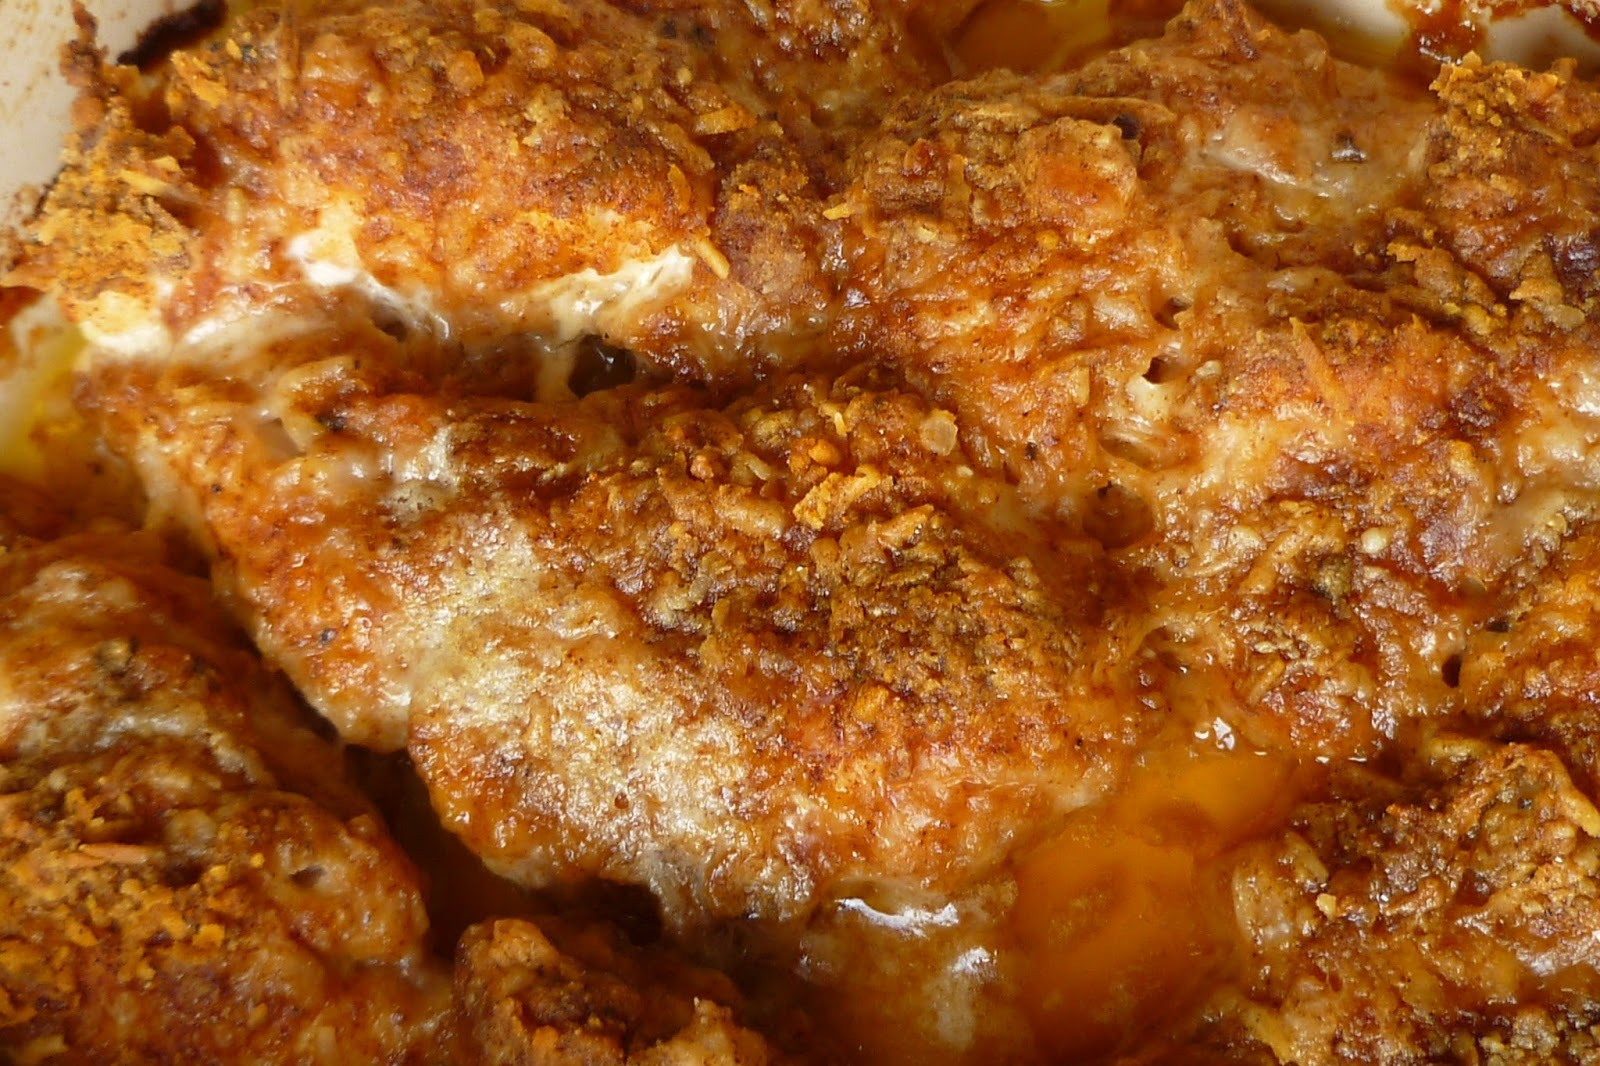 The Pastry Chef's Baking: Baked Parmesan Paprika Chicken